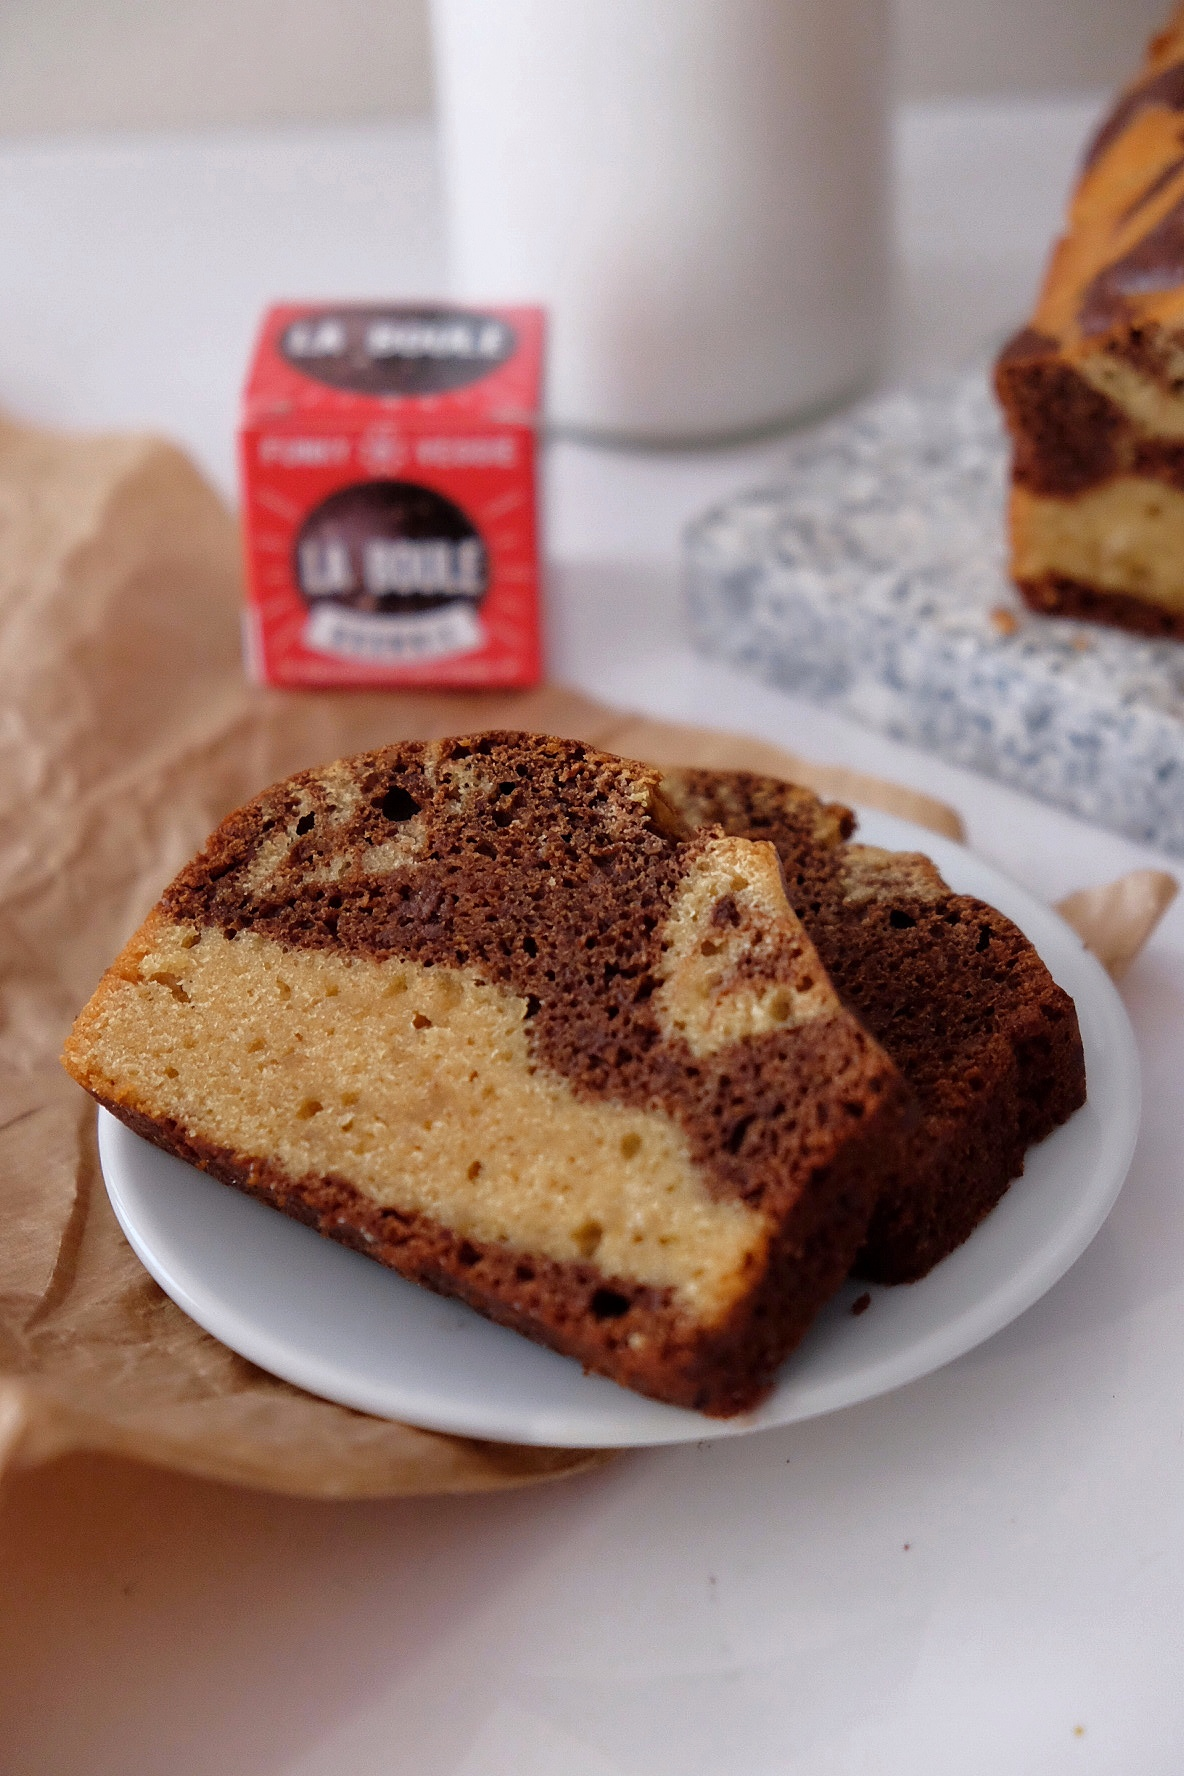 Two flavored sponge cake: chocolate and almonds